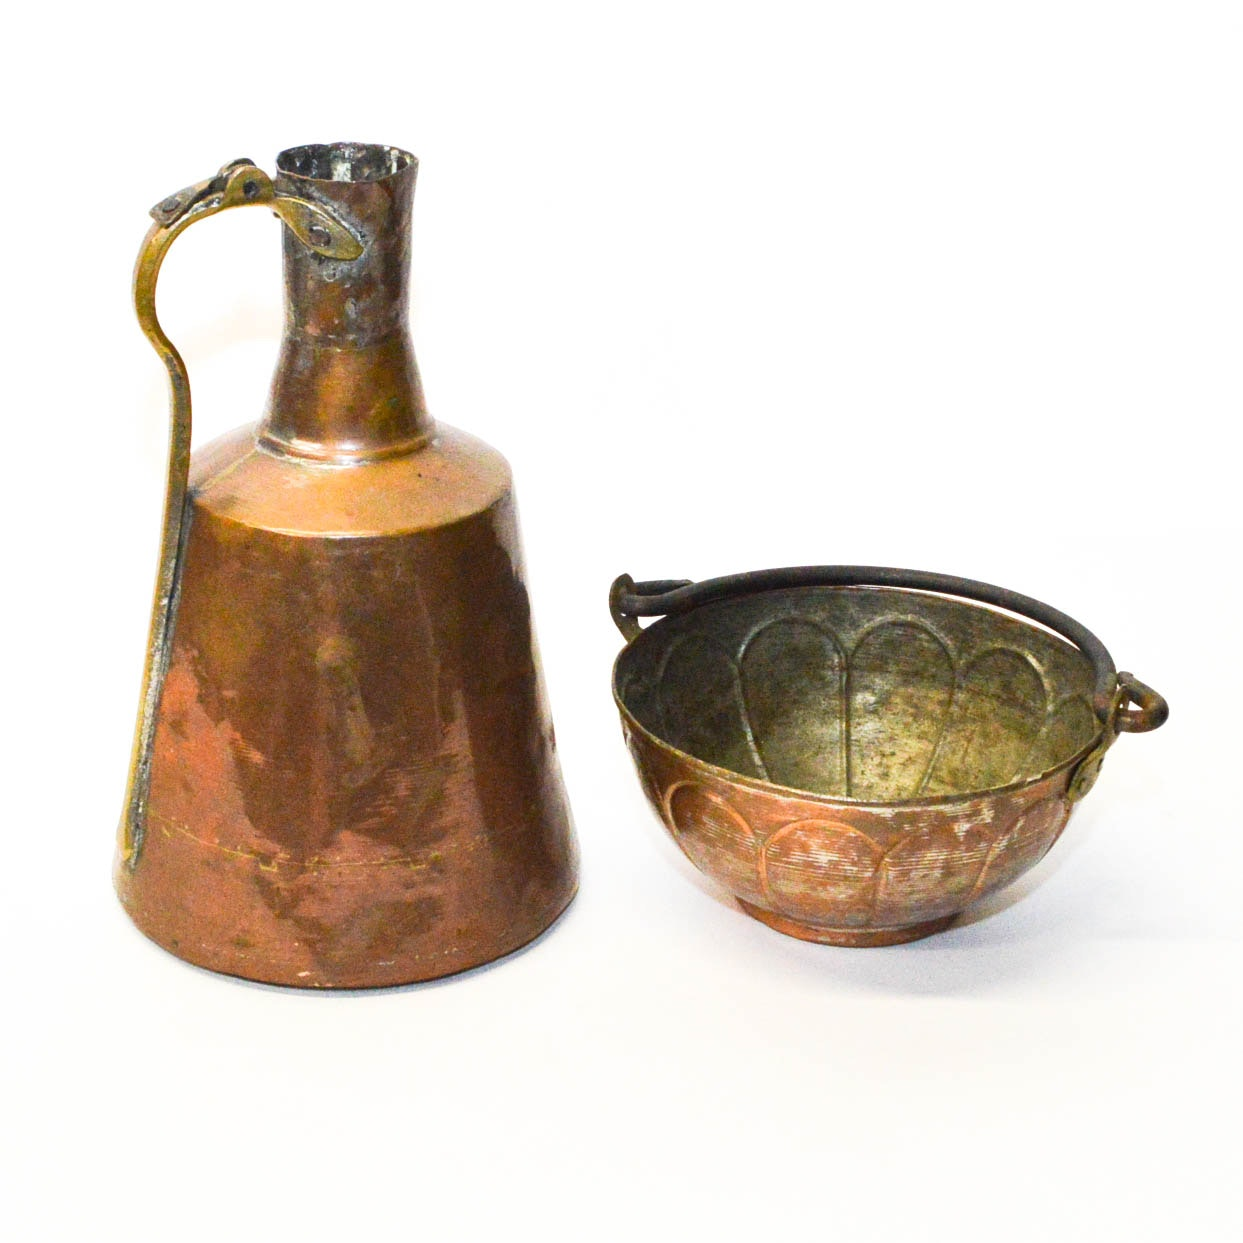 Copper Kettle and Pitcher